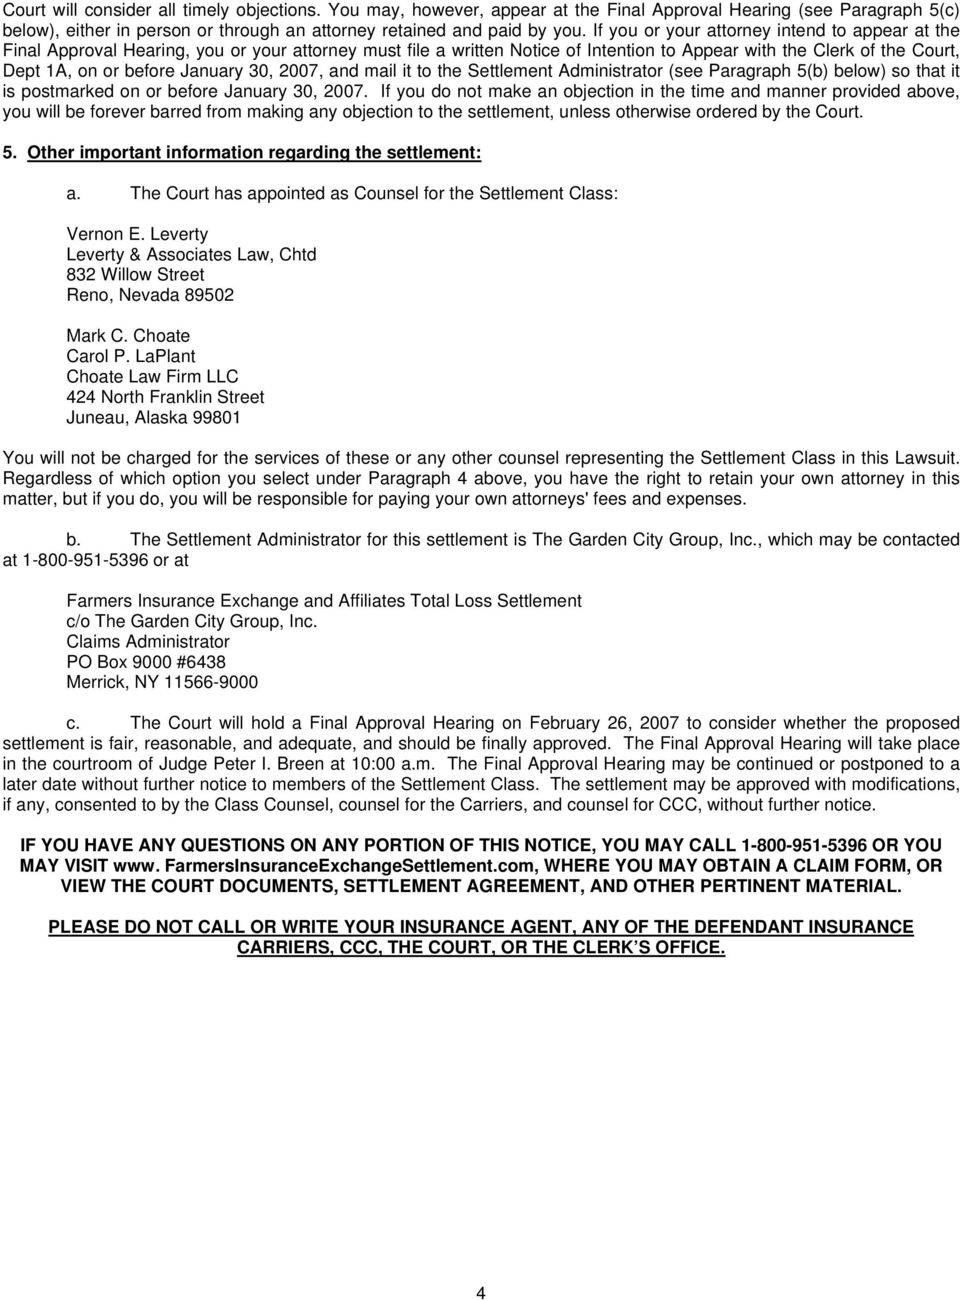 January 30, 2007, and mail it to the Settlement Administrator (see Paragraph 5(b below so that it is postmarked on or before January 30, 2007.